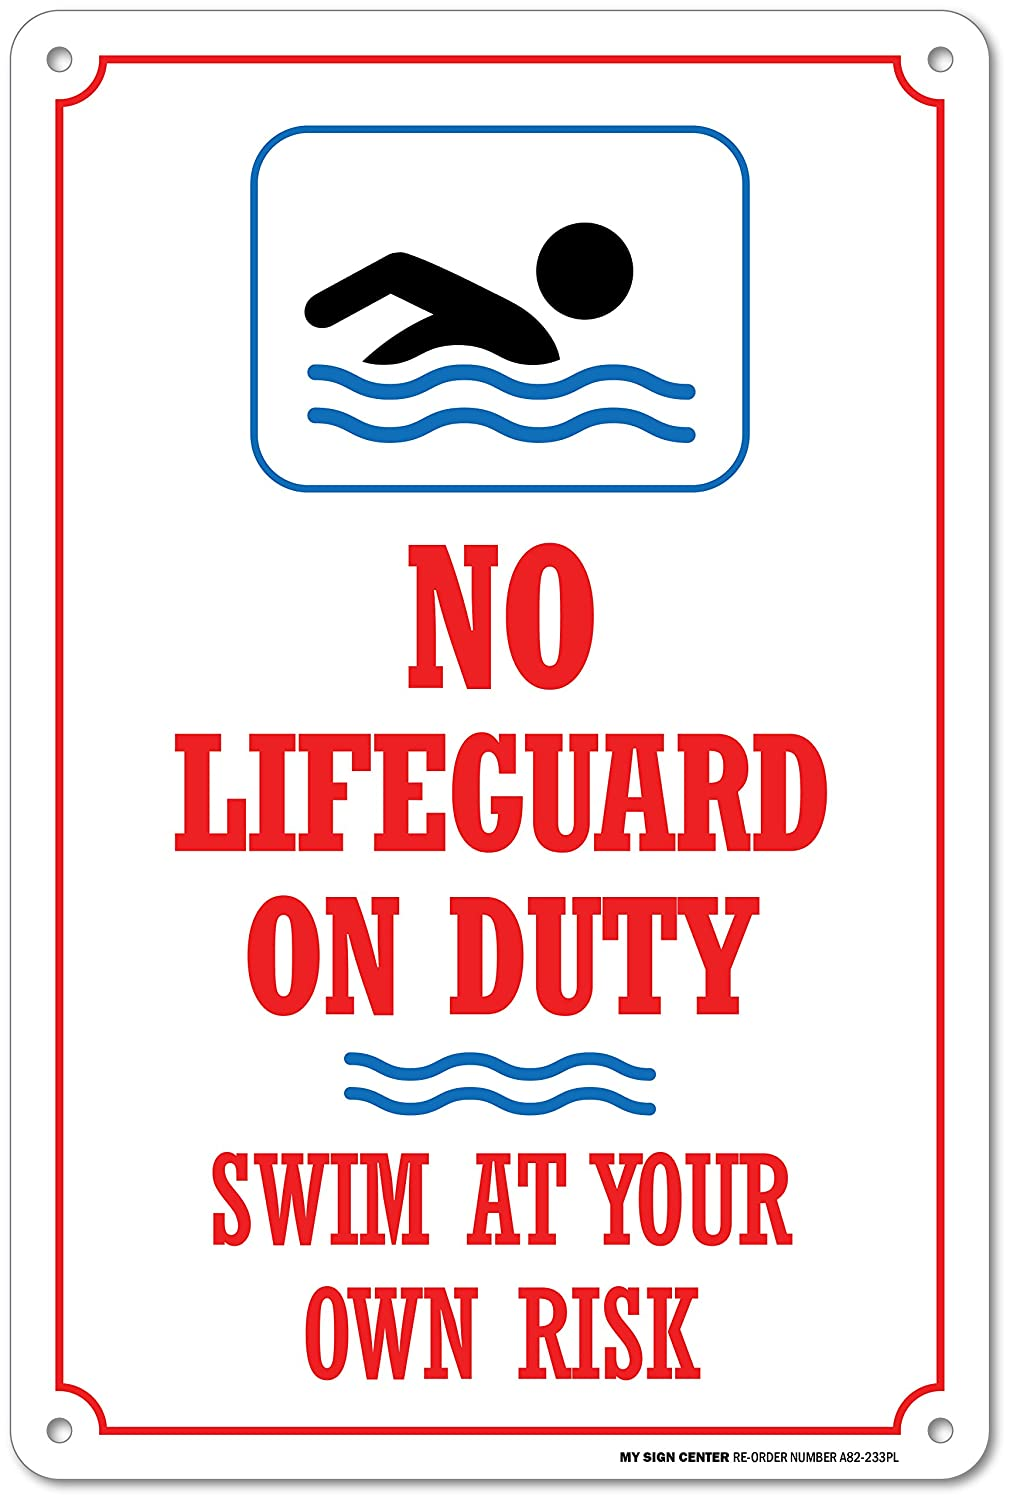 59e9916c3195 No lifeguard on duty swim at your own risk safety sign pool rules jpg  1010x1500 Swim